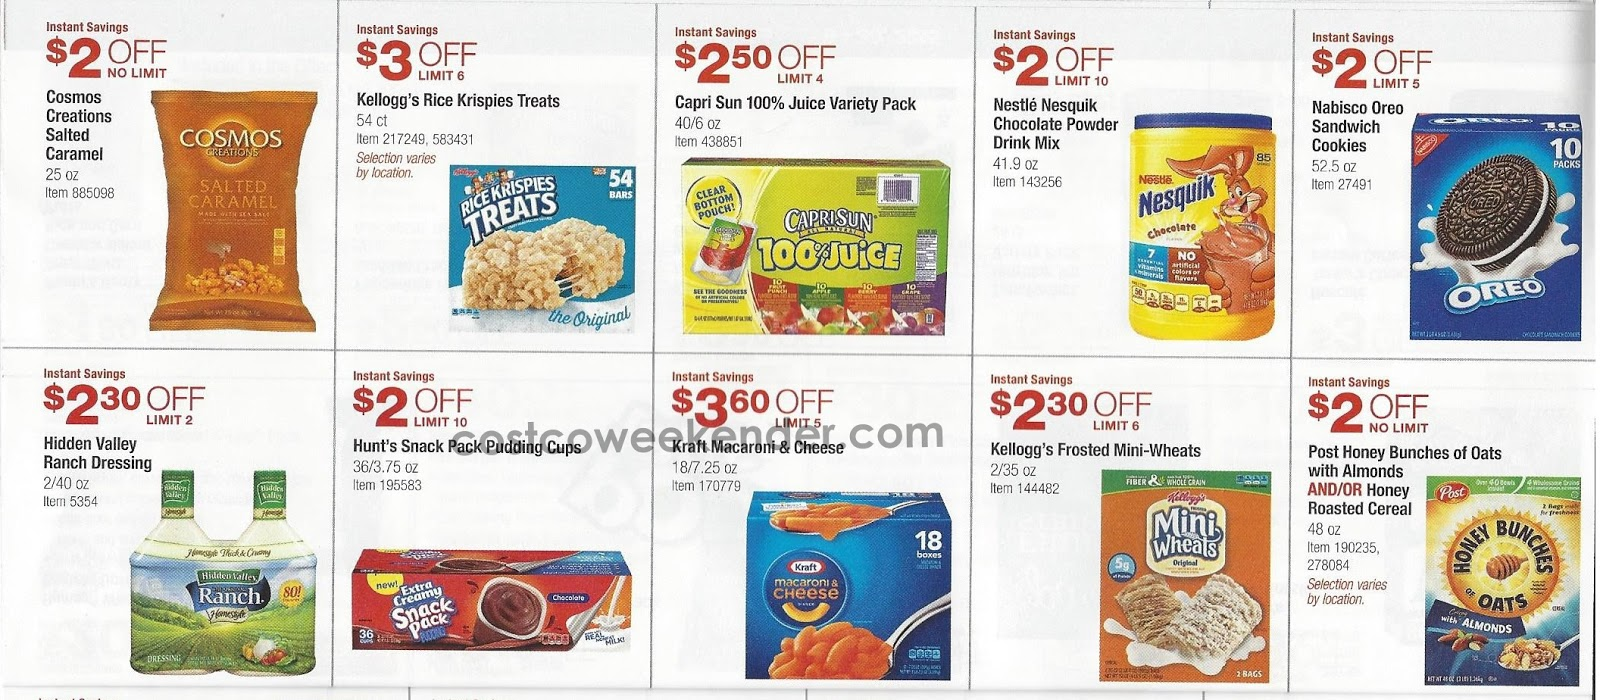 Costco coupon book user manuals current costco coupon book april 2018 array costco us coupon book august 2018 coupon codes for wildwood inn rh bmoedits tk fandeluxe Images